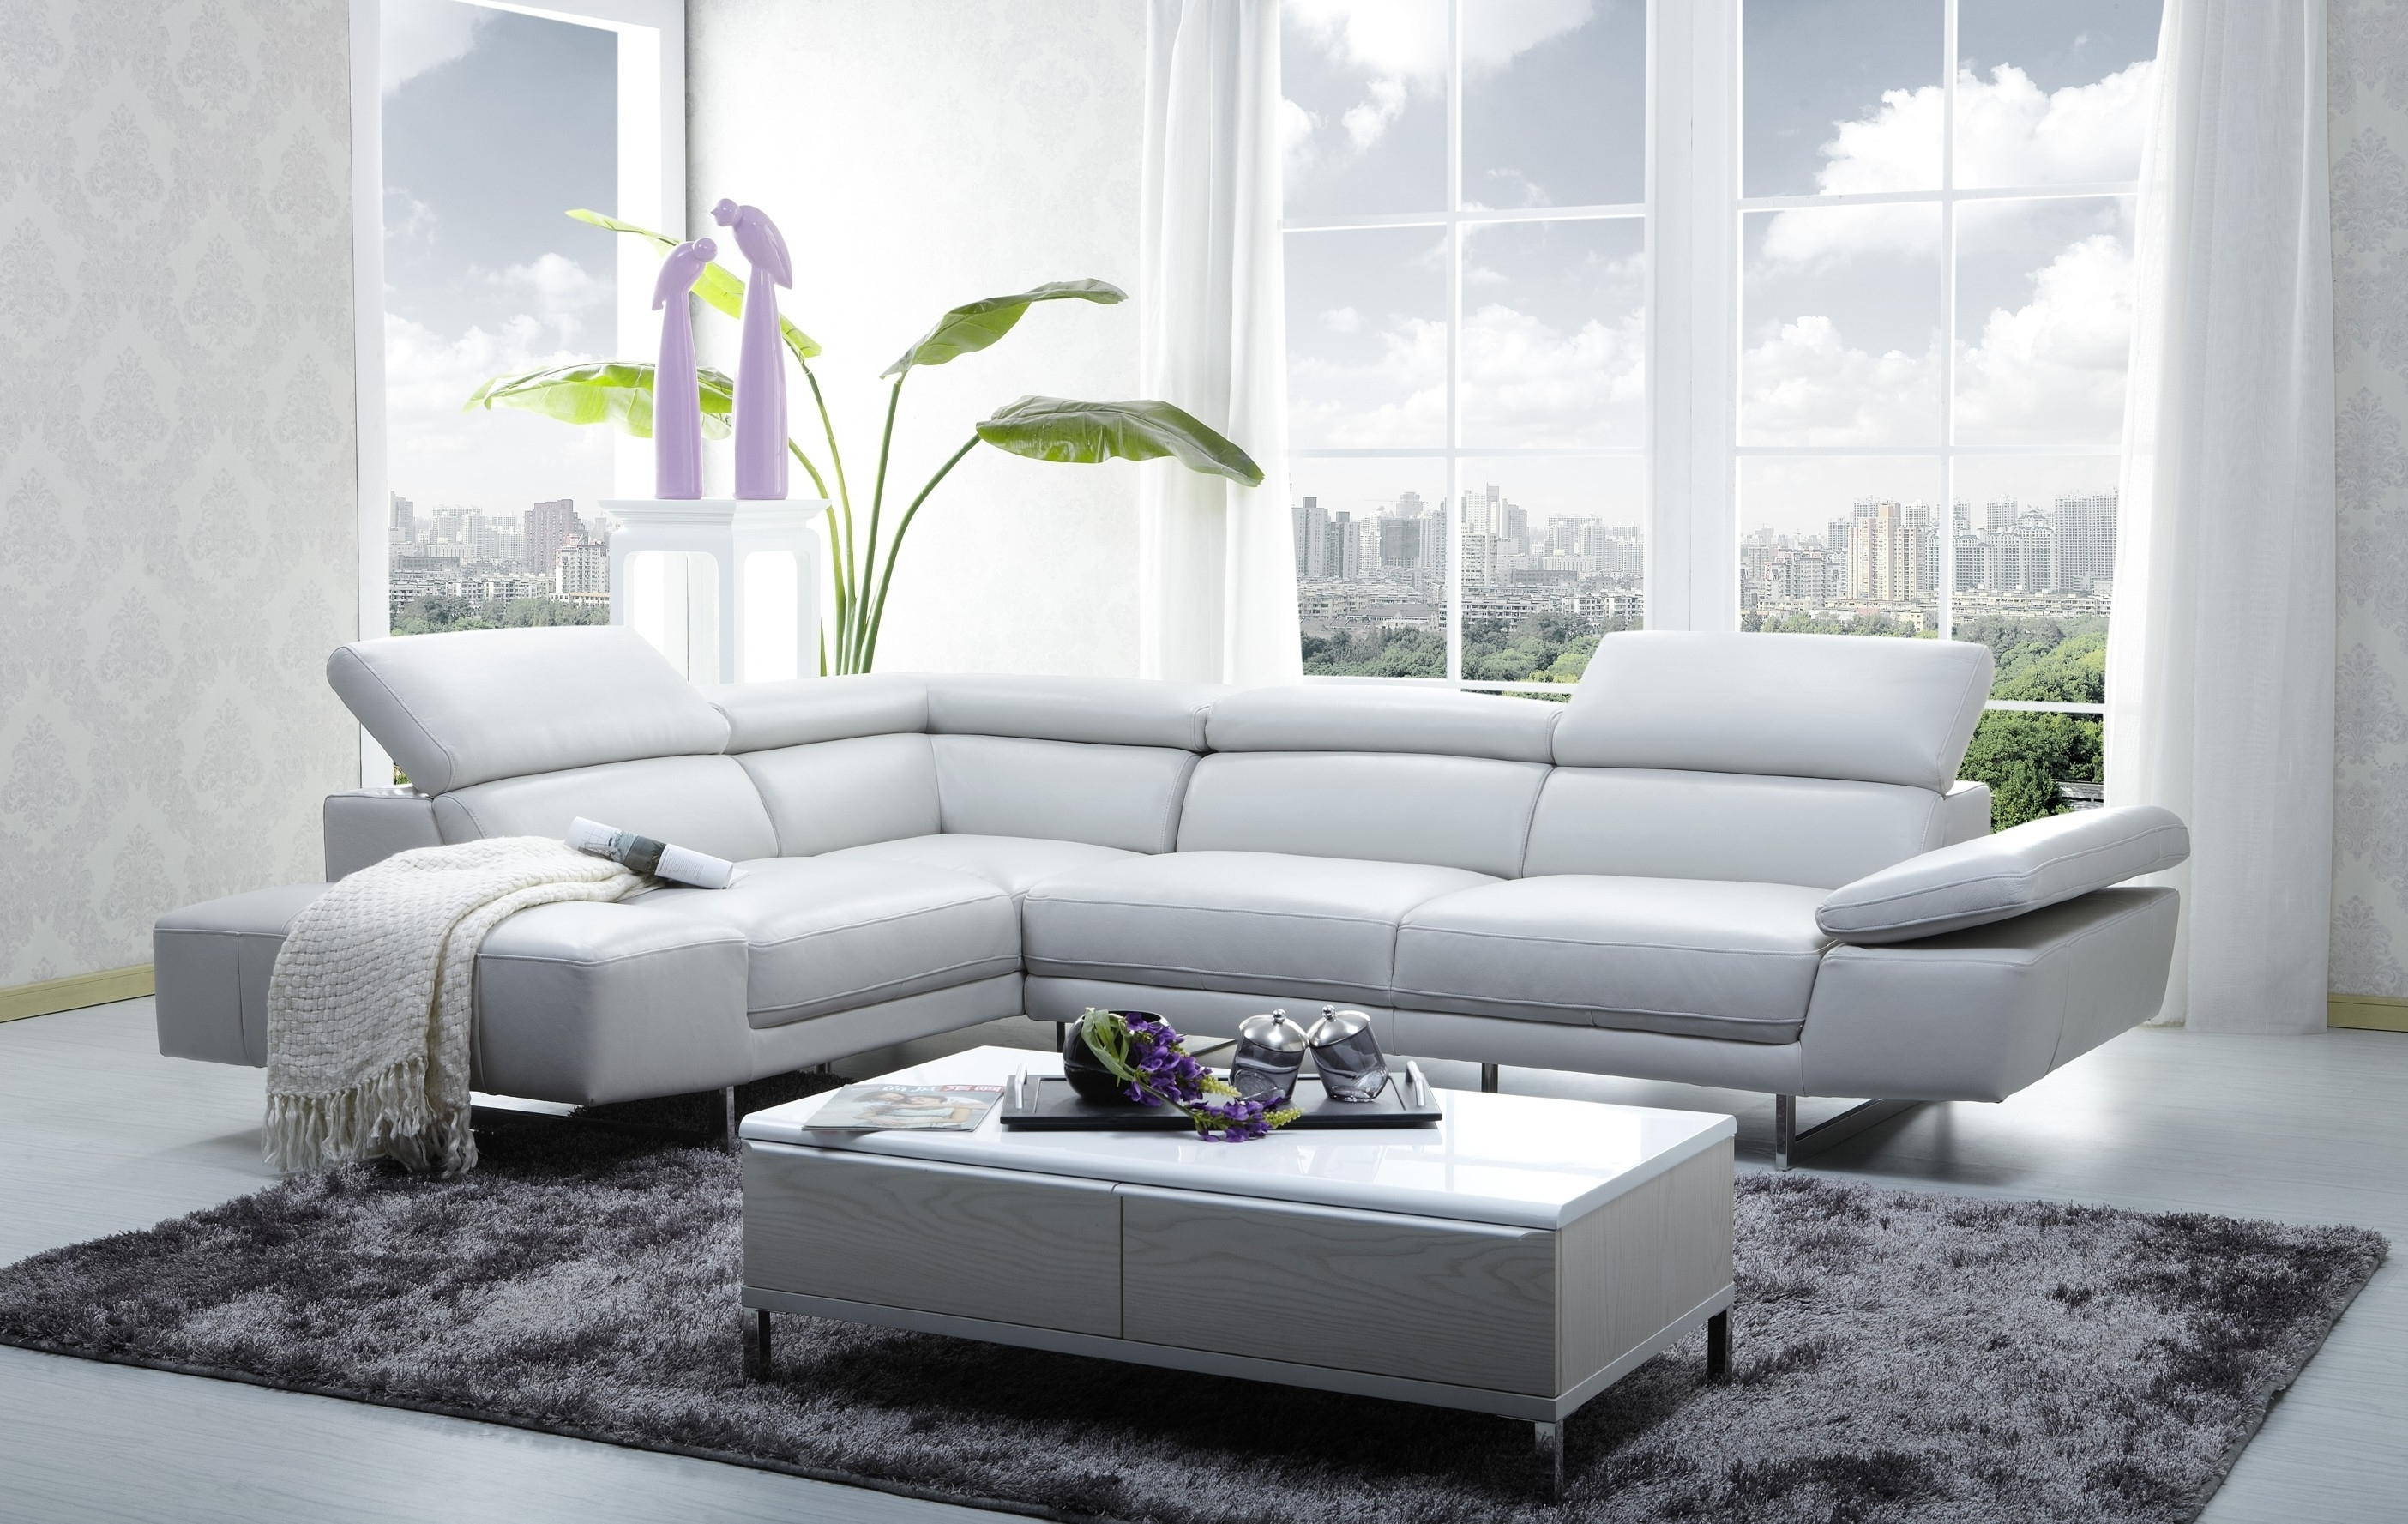 Latest Furniture : Sectional Sofa With 2 Chaise Wayfair Turquoise Sofa Inside Layaway Sectional Sofas (View 6 of 15)